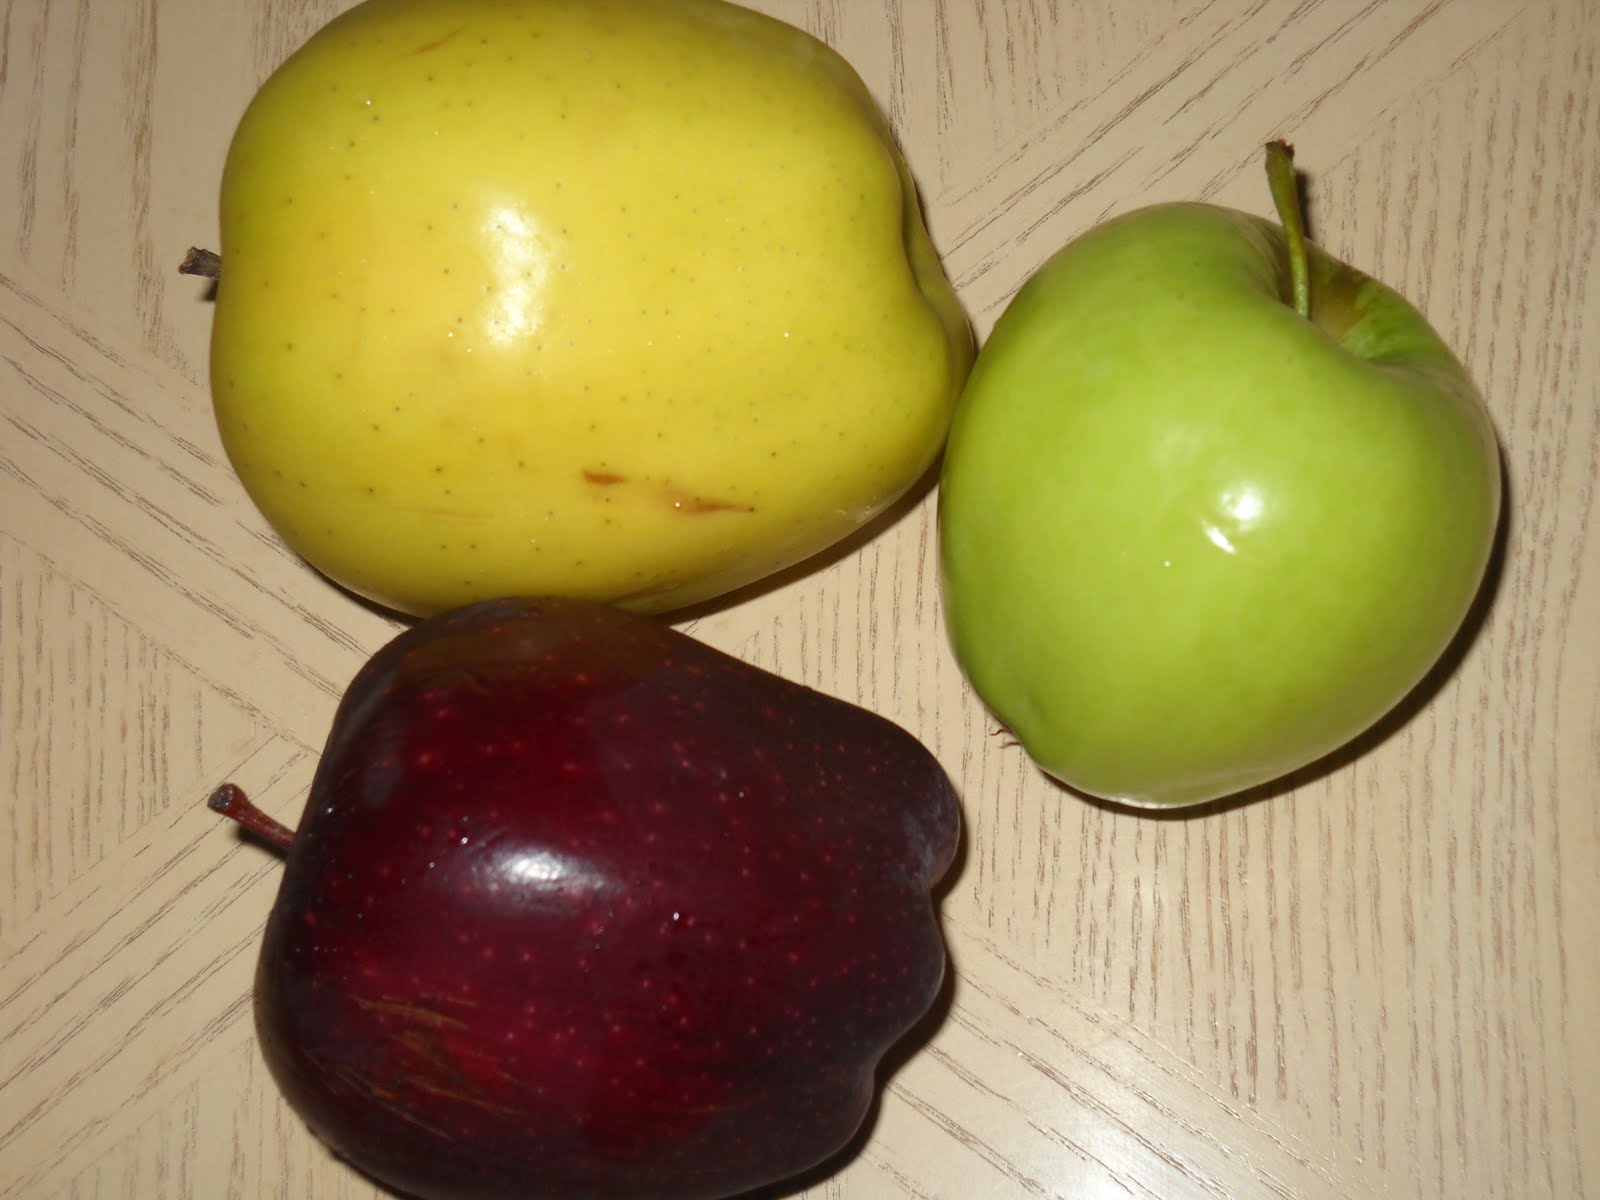 Red And Yellow Apples Granny smith (red, yellow,